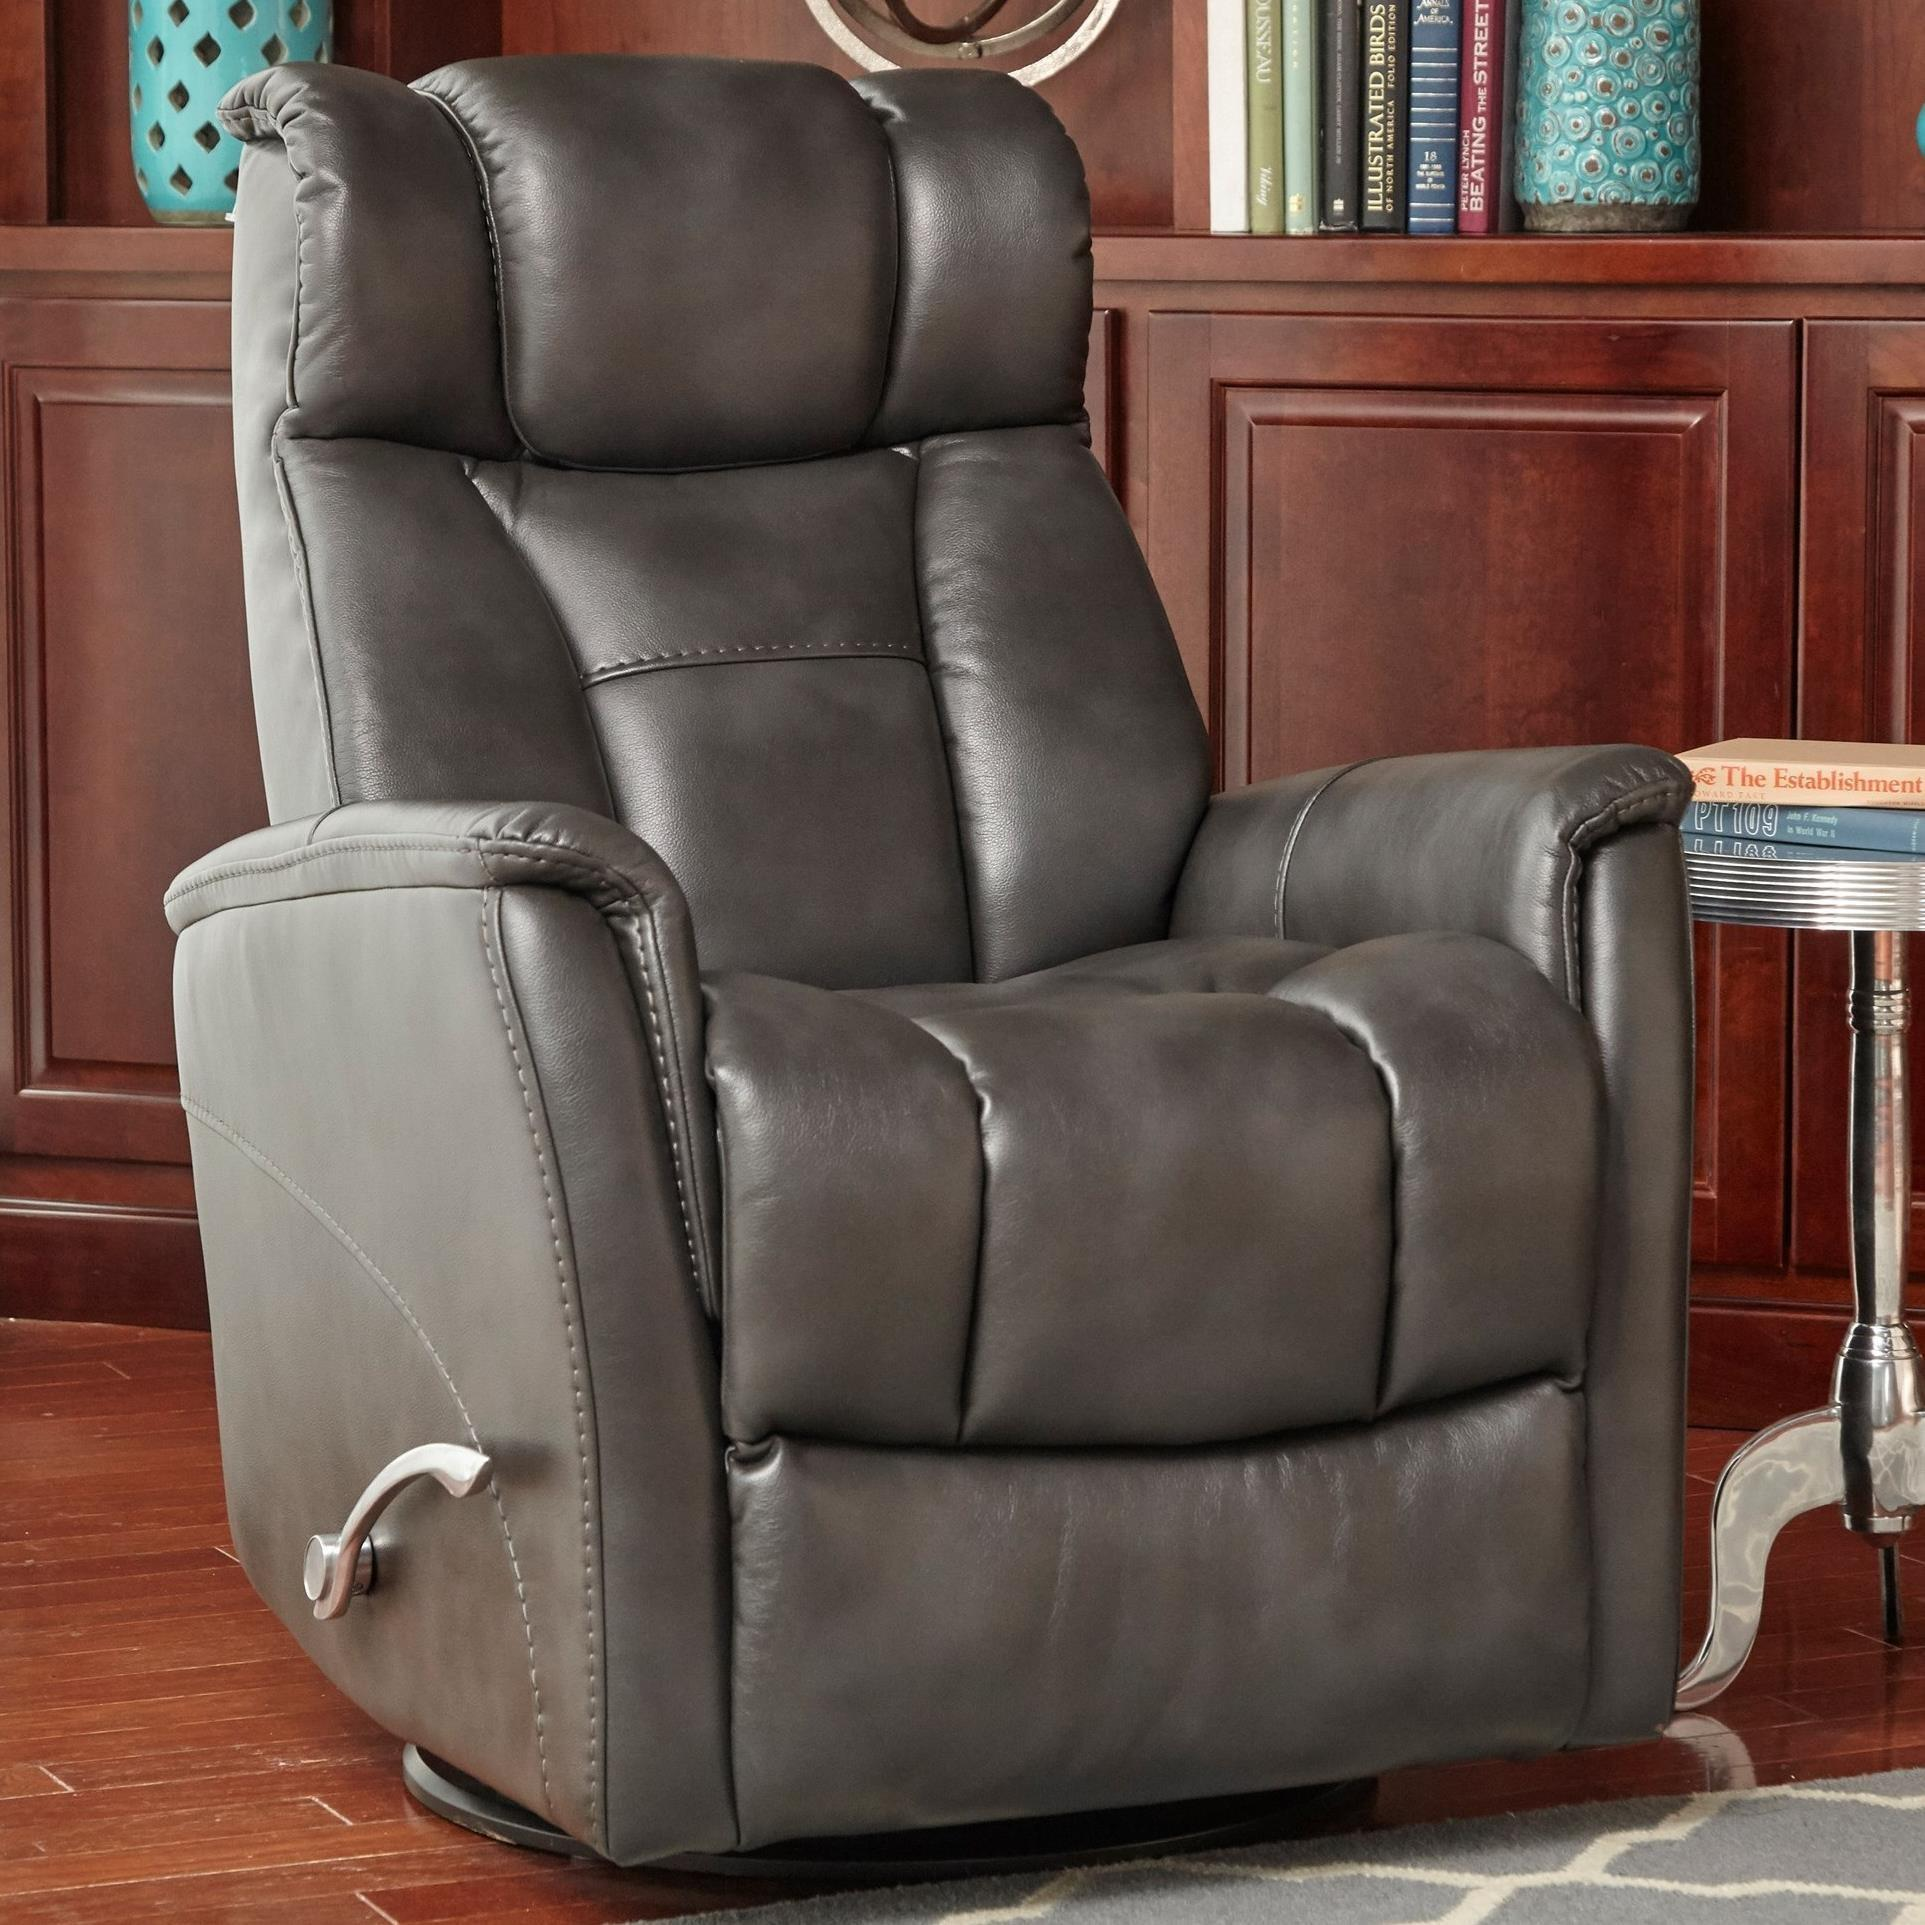 sale and reclining recliners furniture wall elran leather power family from room rocker biltrite living on mattresses